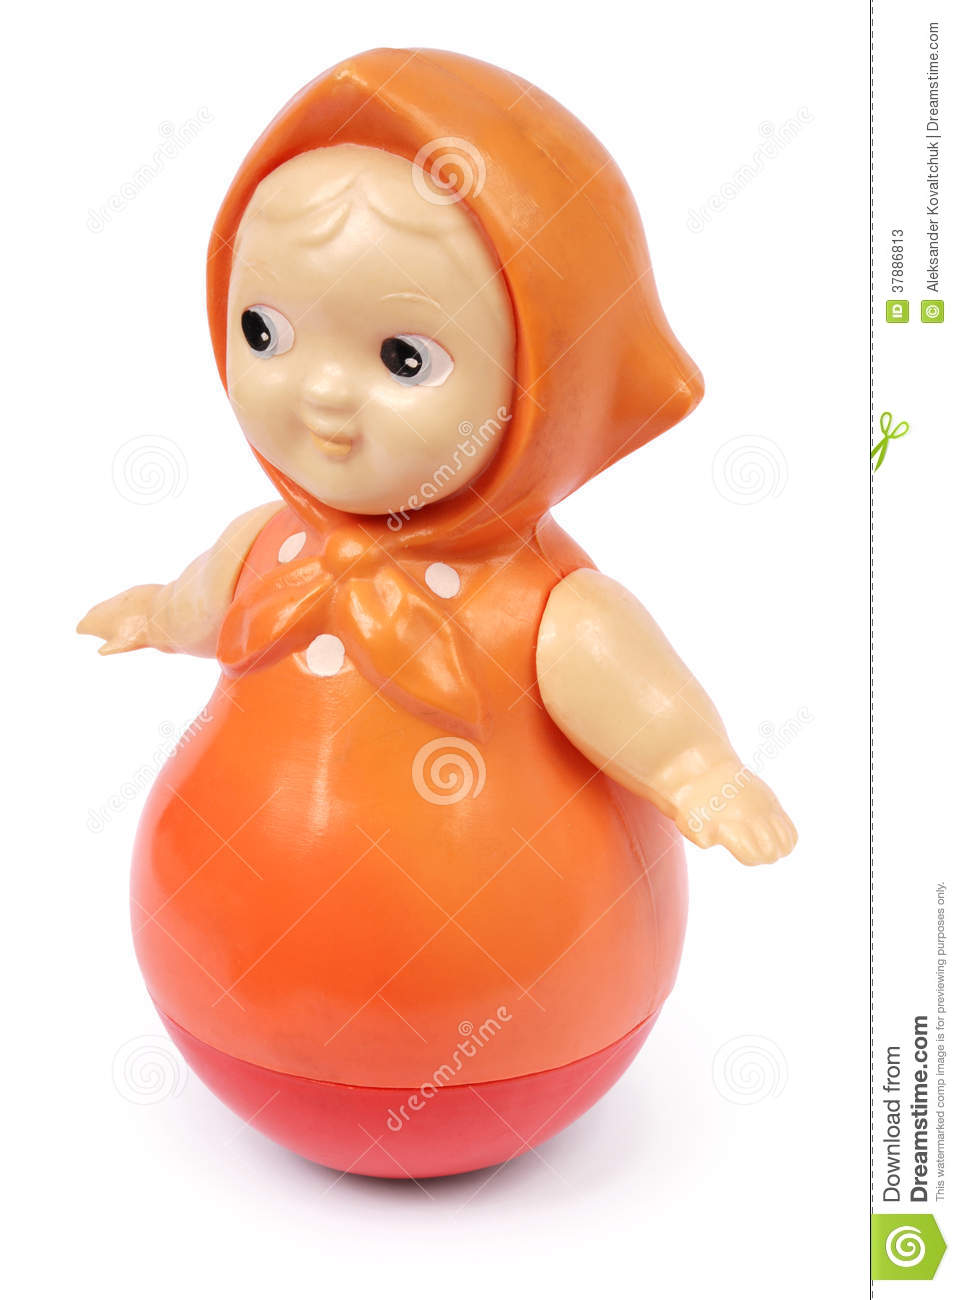 Old Plastic Doll (Clipping Path) Stock Photos - Image: 37886813